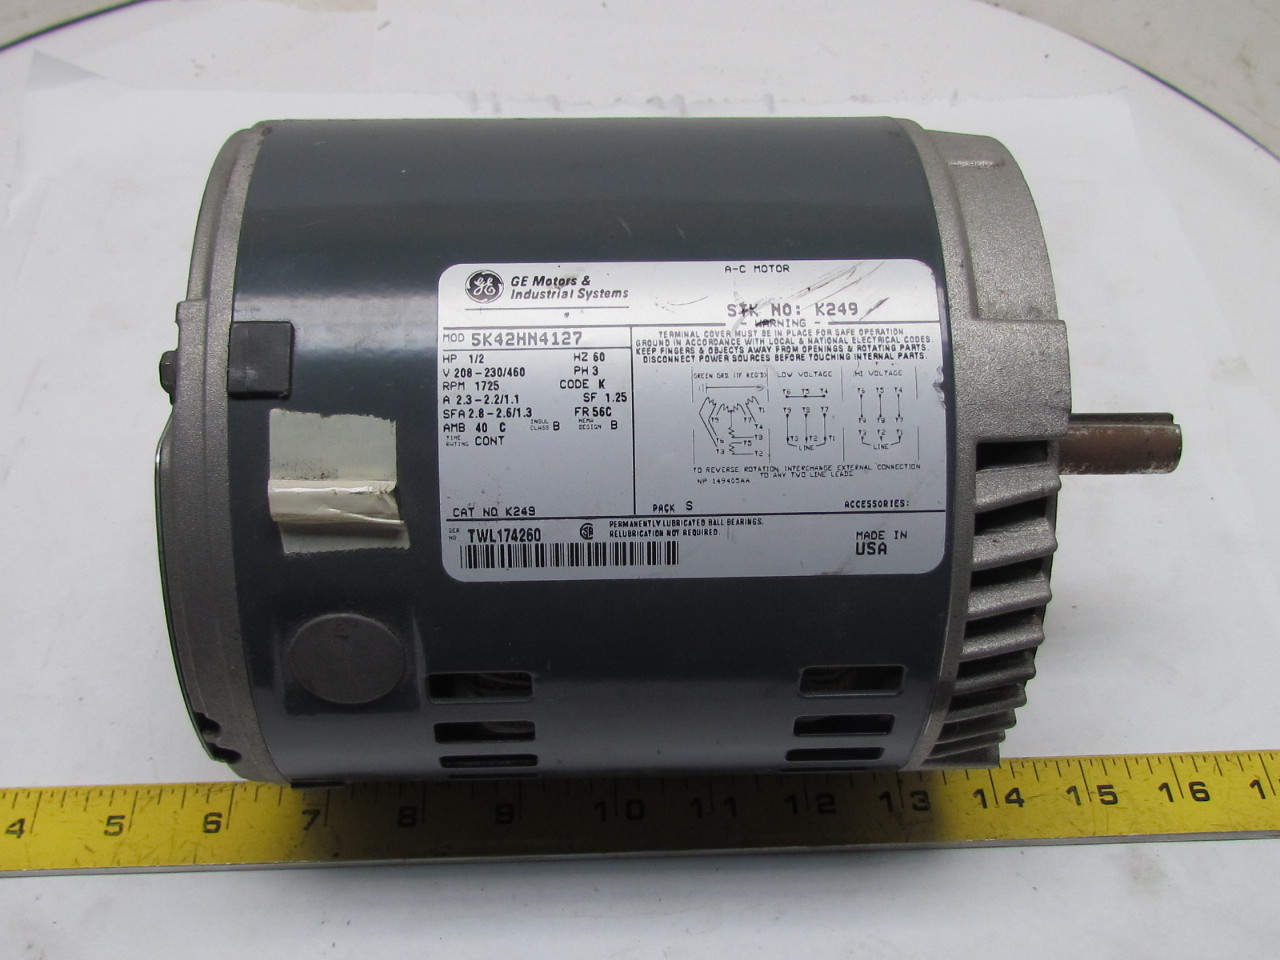 General electric 5k42hn4127 3ph ac motor 1 2hp 1725 rpm for 2 rpm electric motor